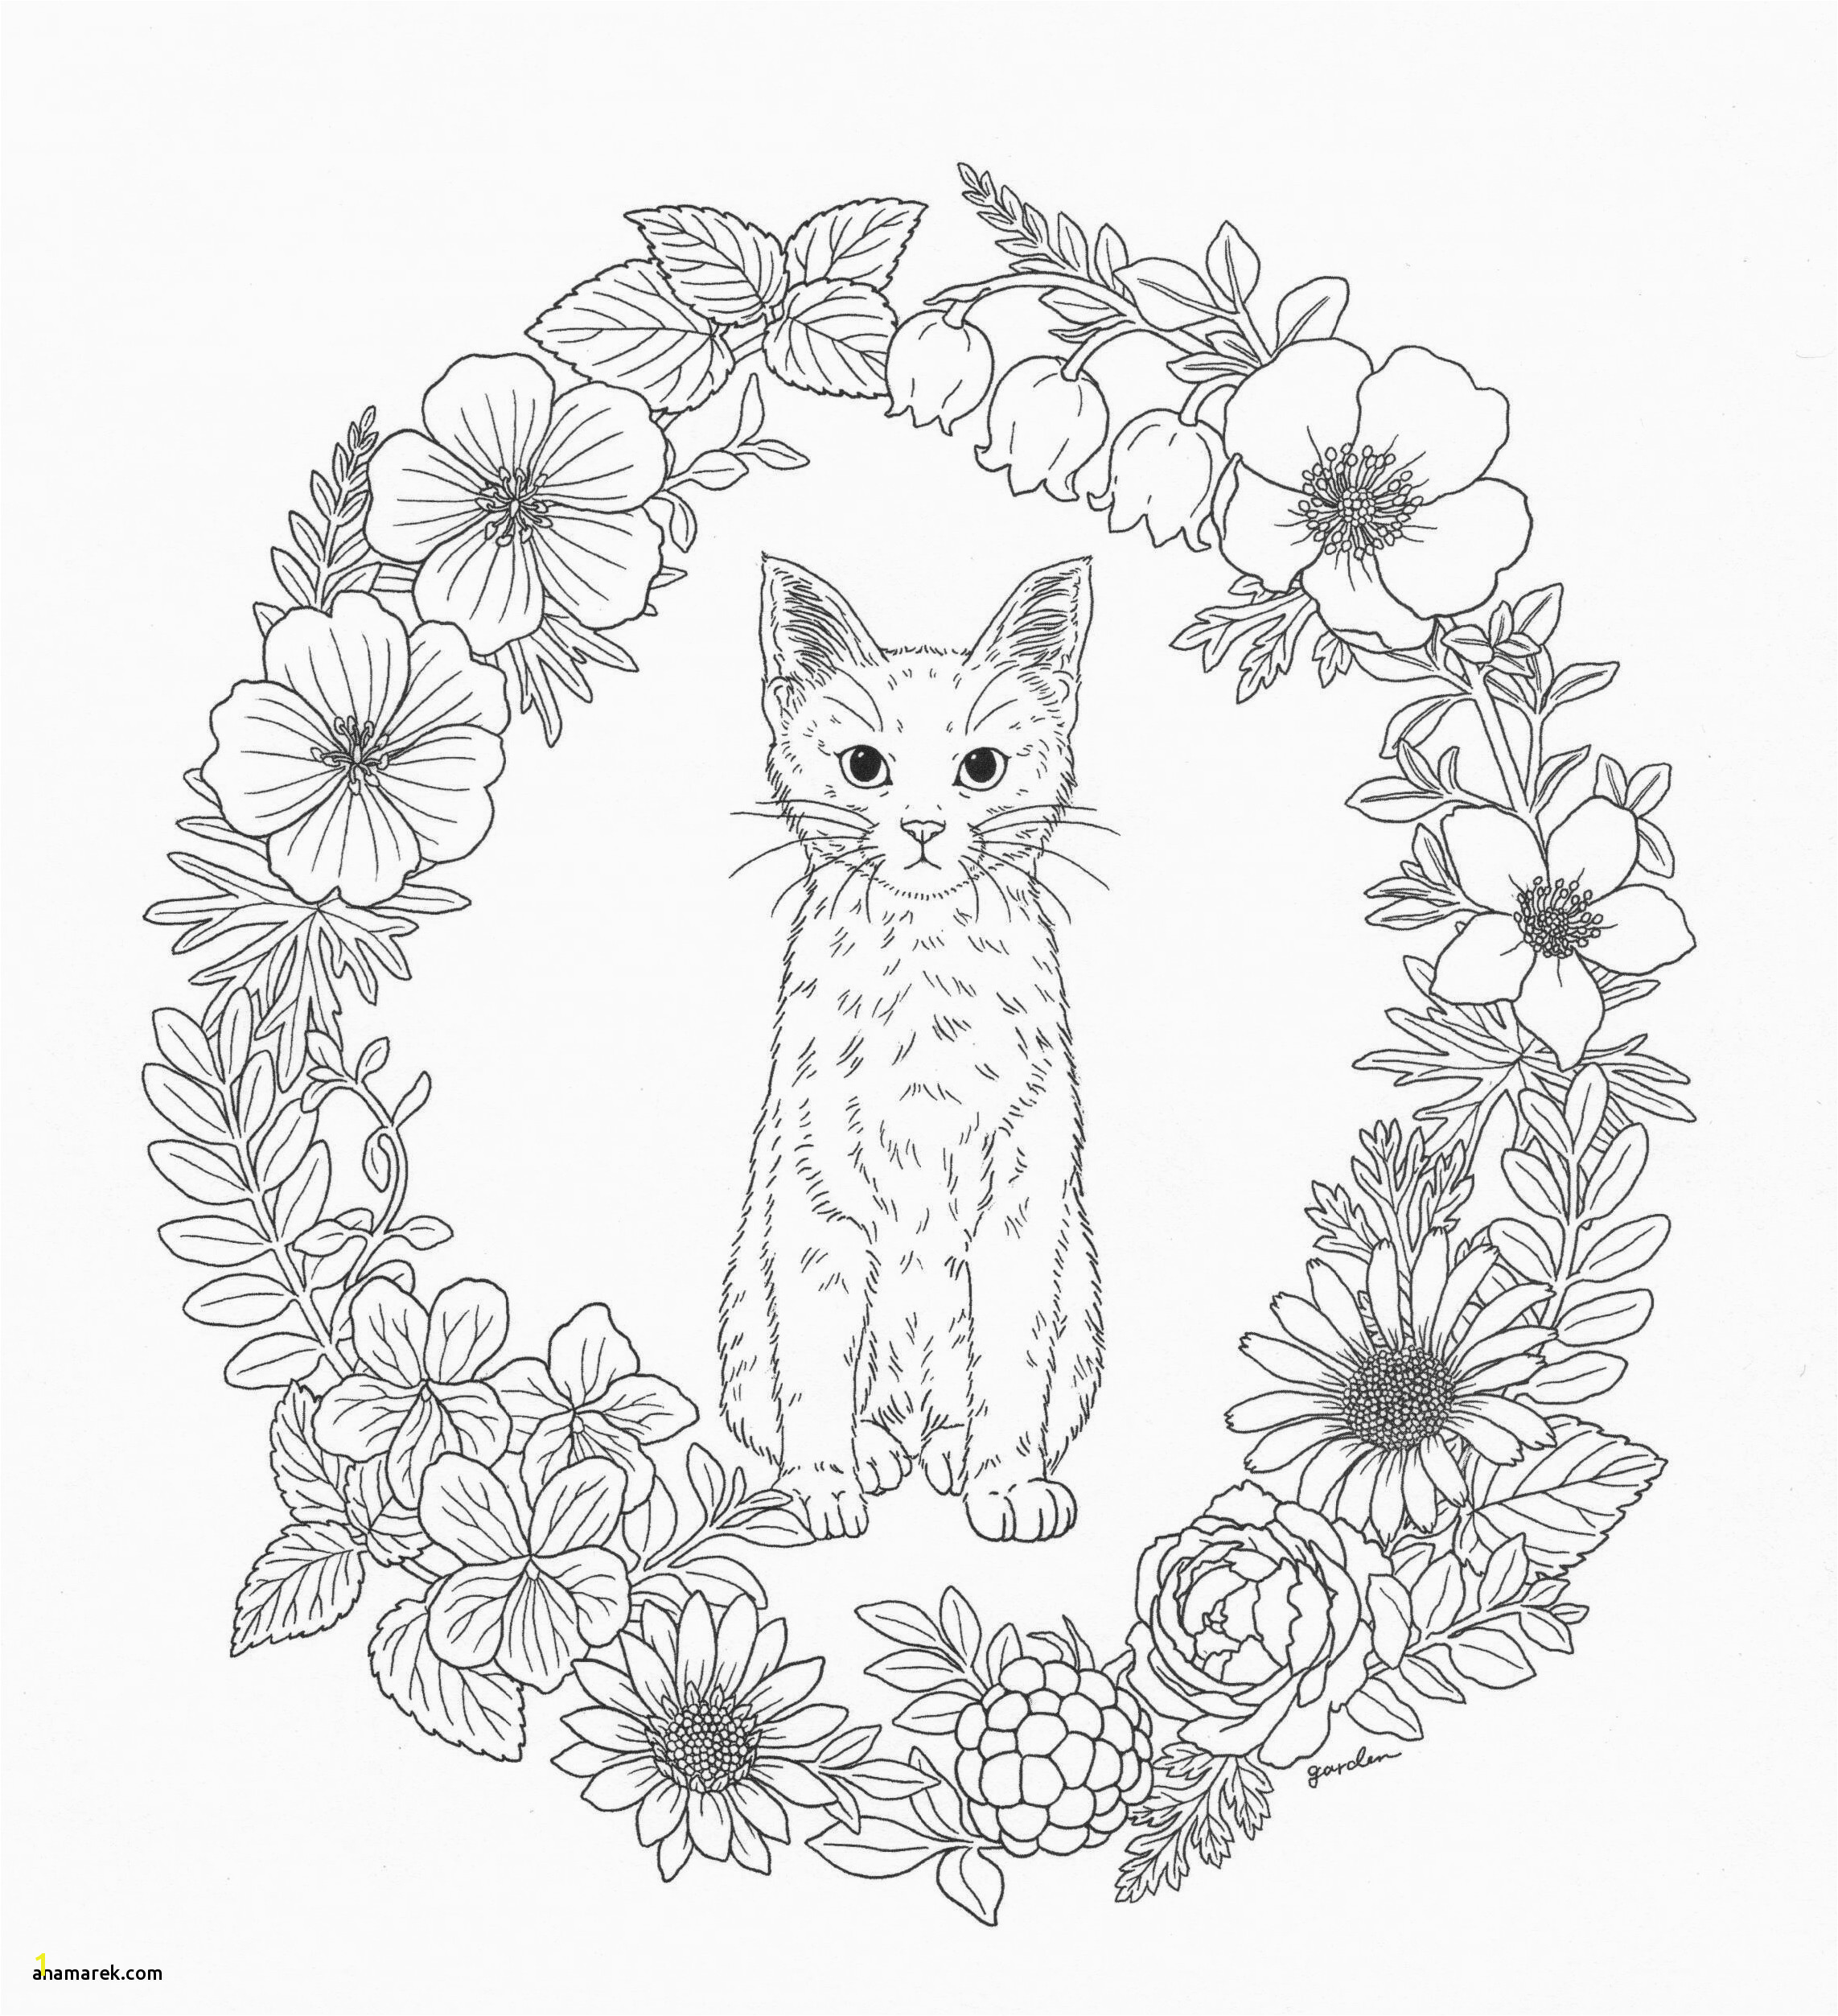 18lovely Crybaby Coloring Book More Image Ideas Crybaby Coloring Book Fresh Melanie Martinez